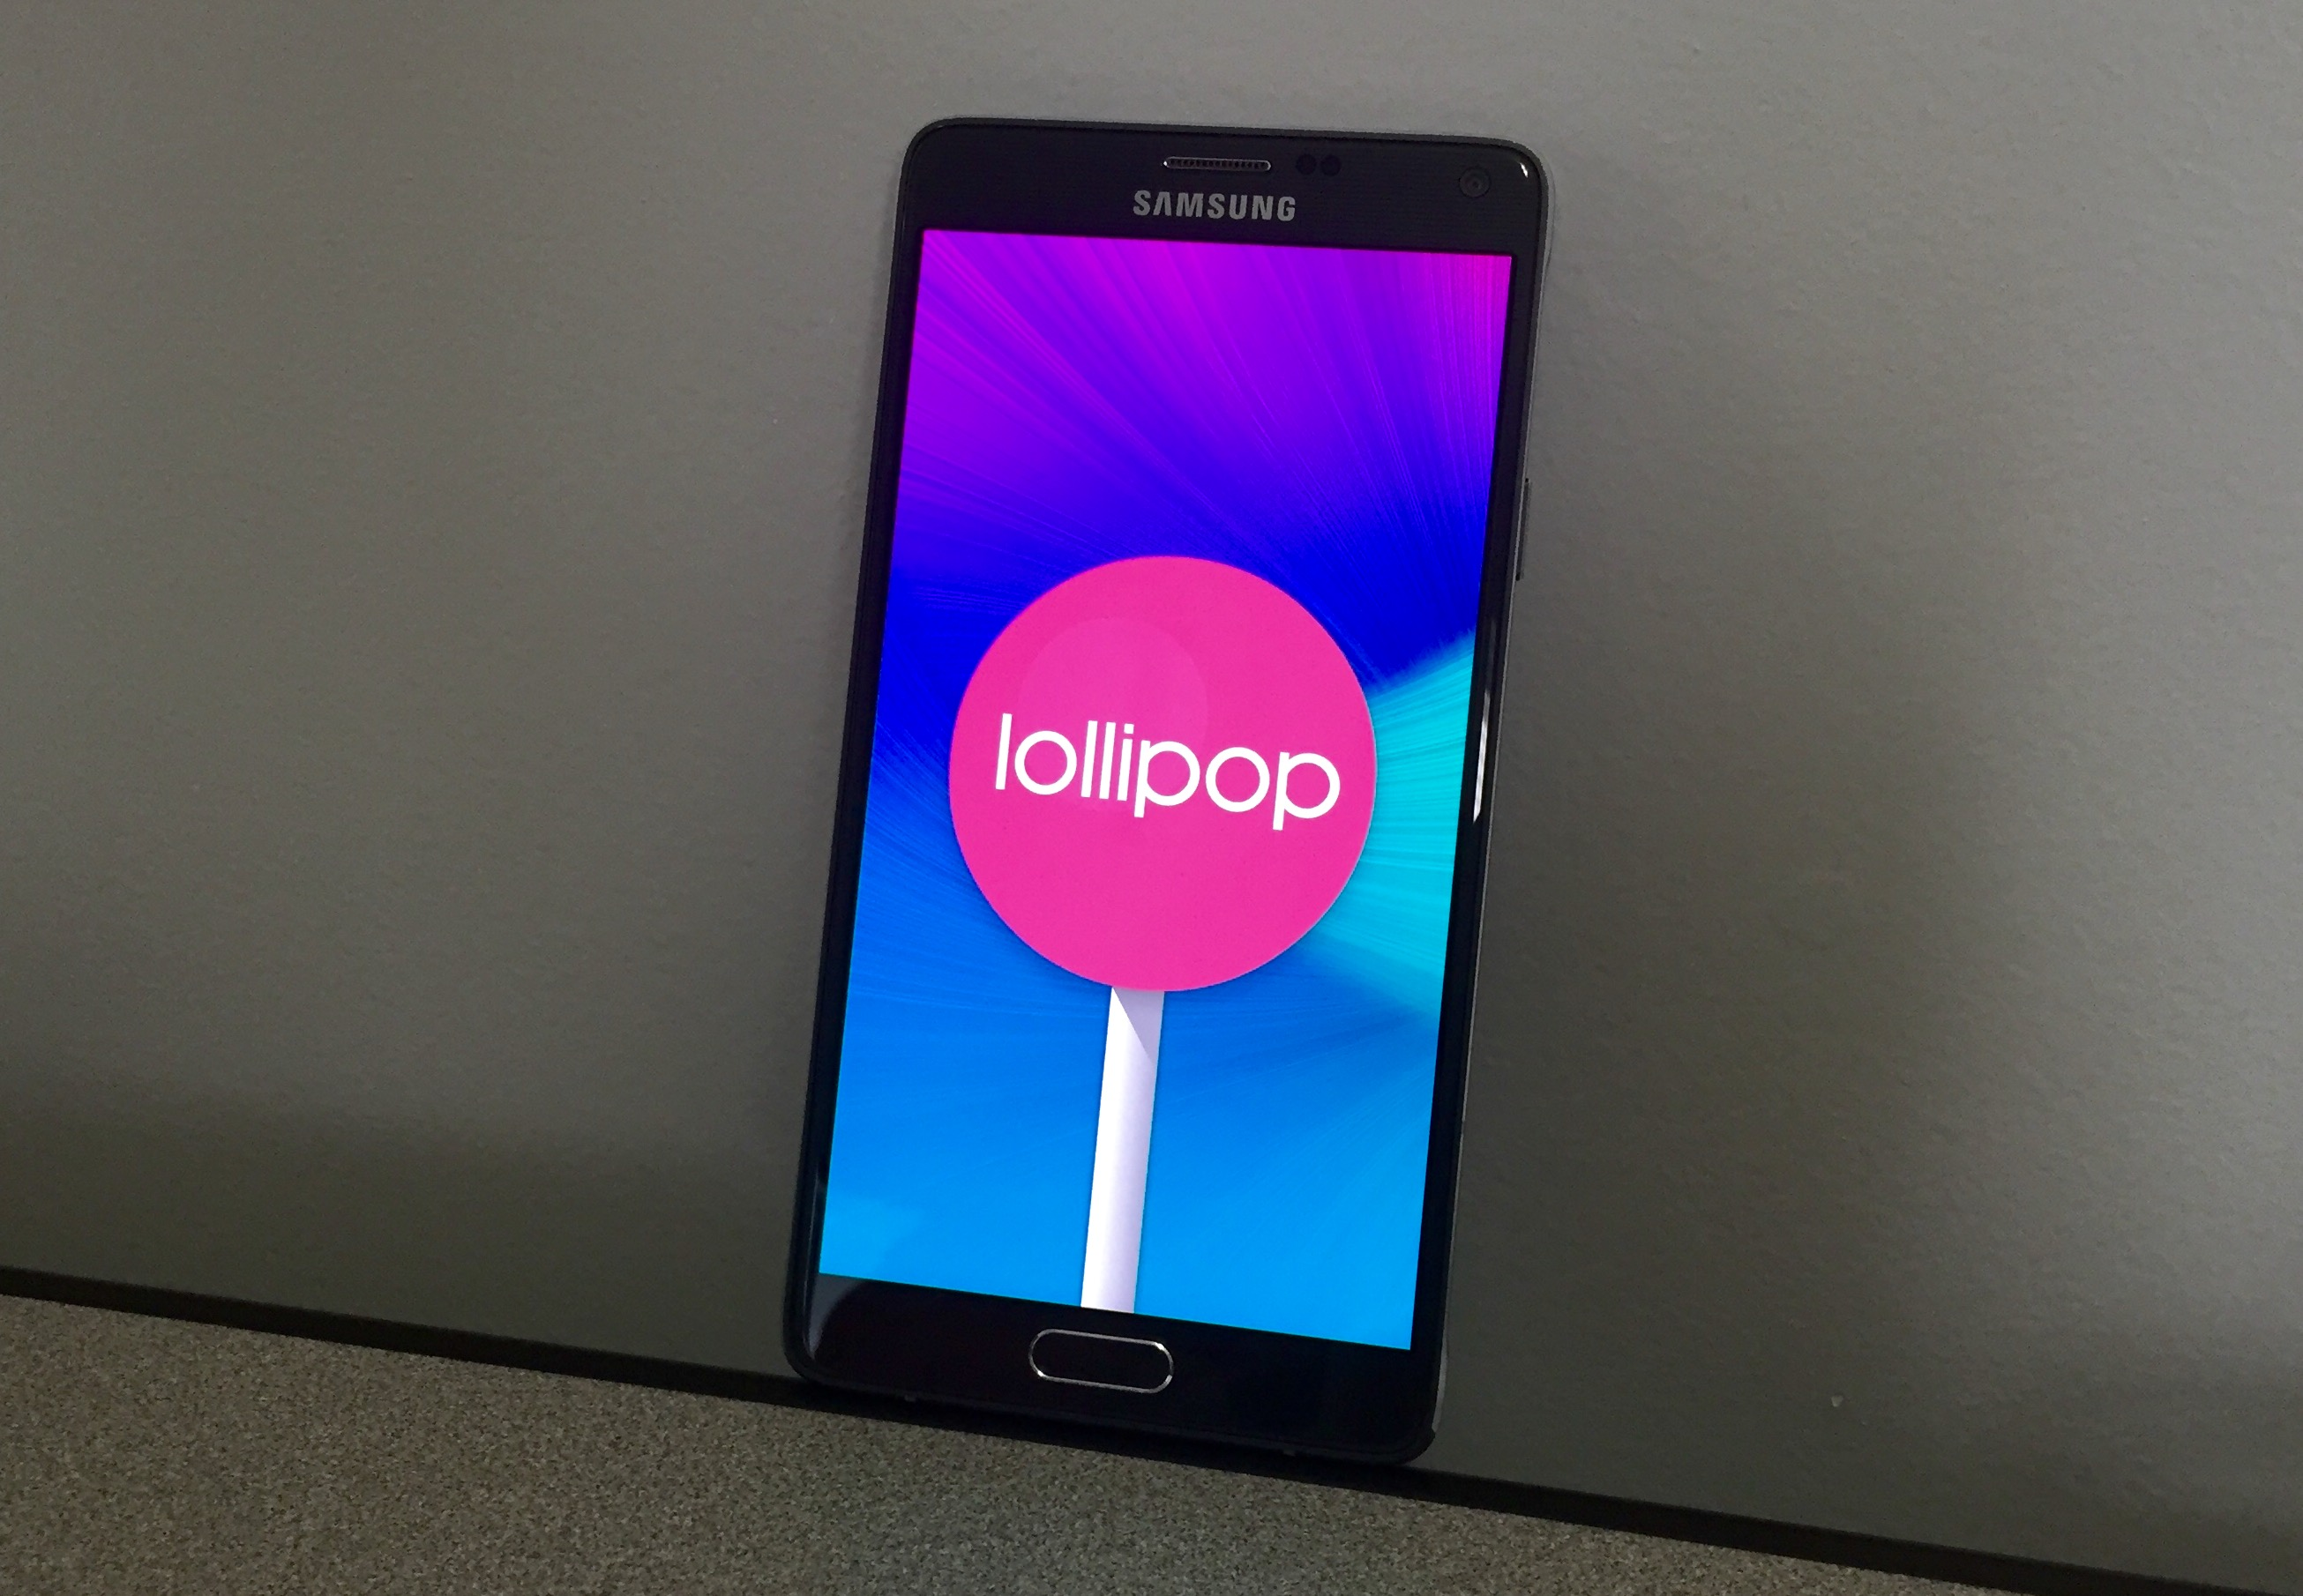 Samsung Lollipop Update: 15 Things You Need to Know Now